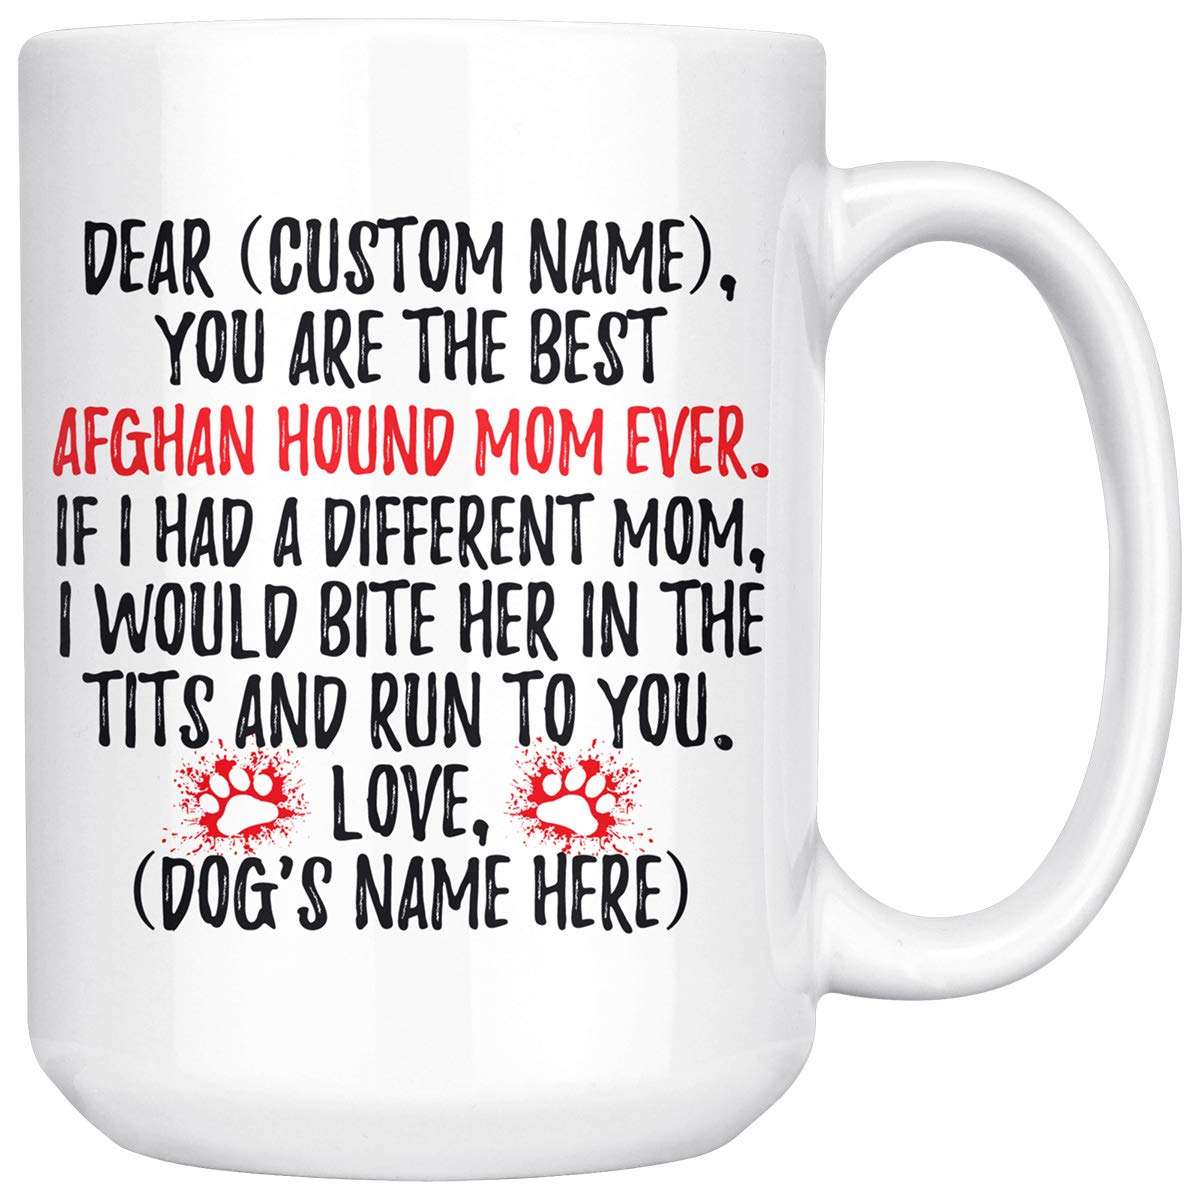 Amazon.com: Personalized Afghan Hound Women Gifts, Afghan Hound Mommy Mug, Afghan Hound Dog Owner, Afghan Hound Mom Present Gift, Afghan Hound Mama Mug (15 ...